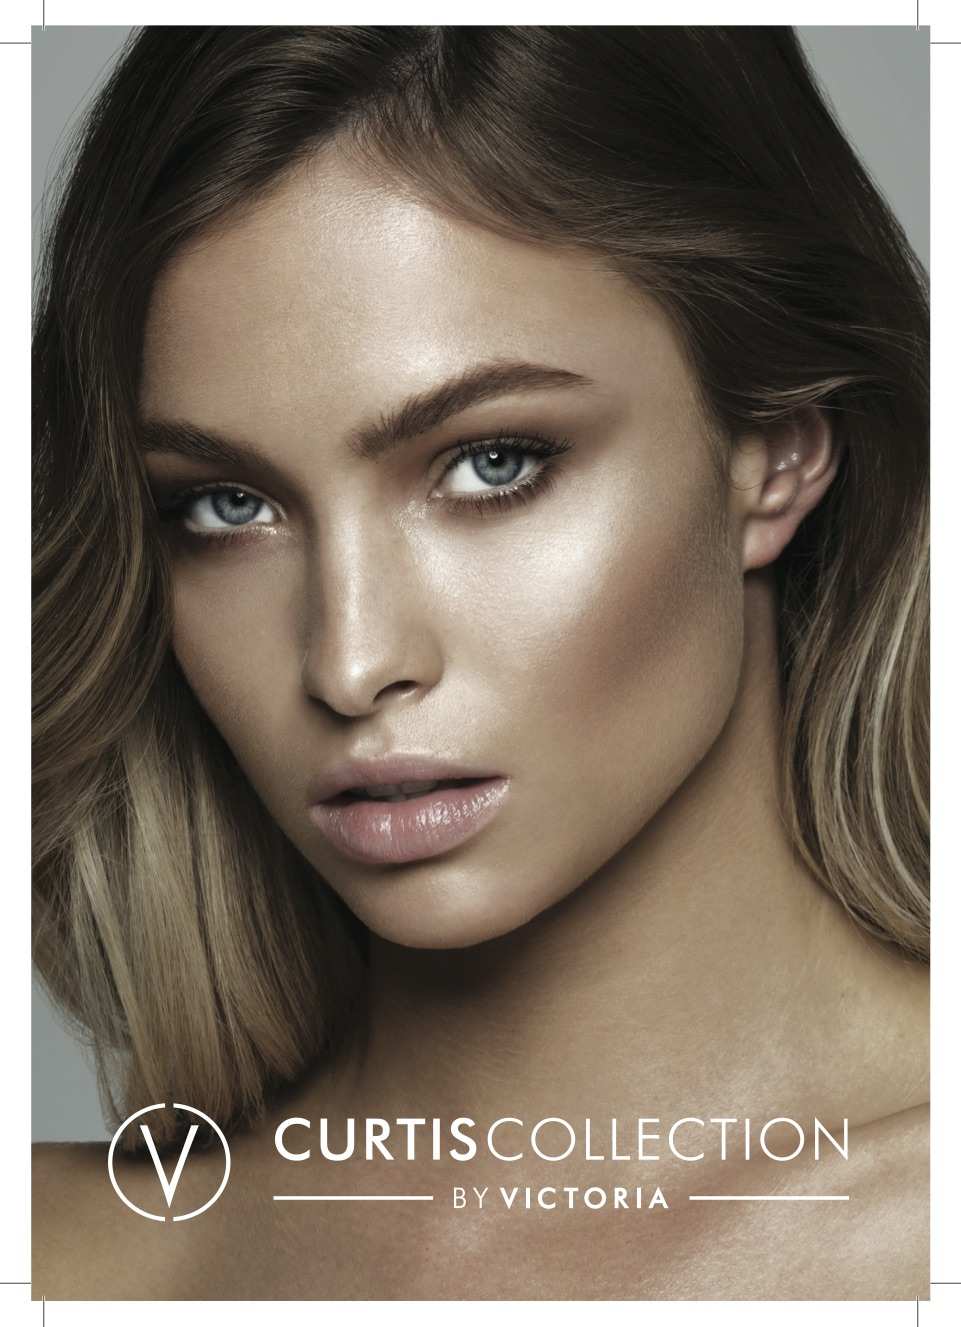 Curtis Collection Skin Correctors